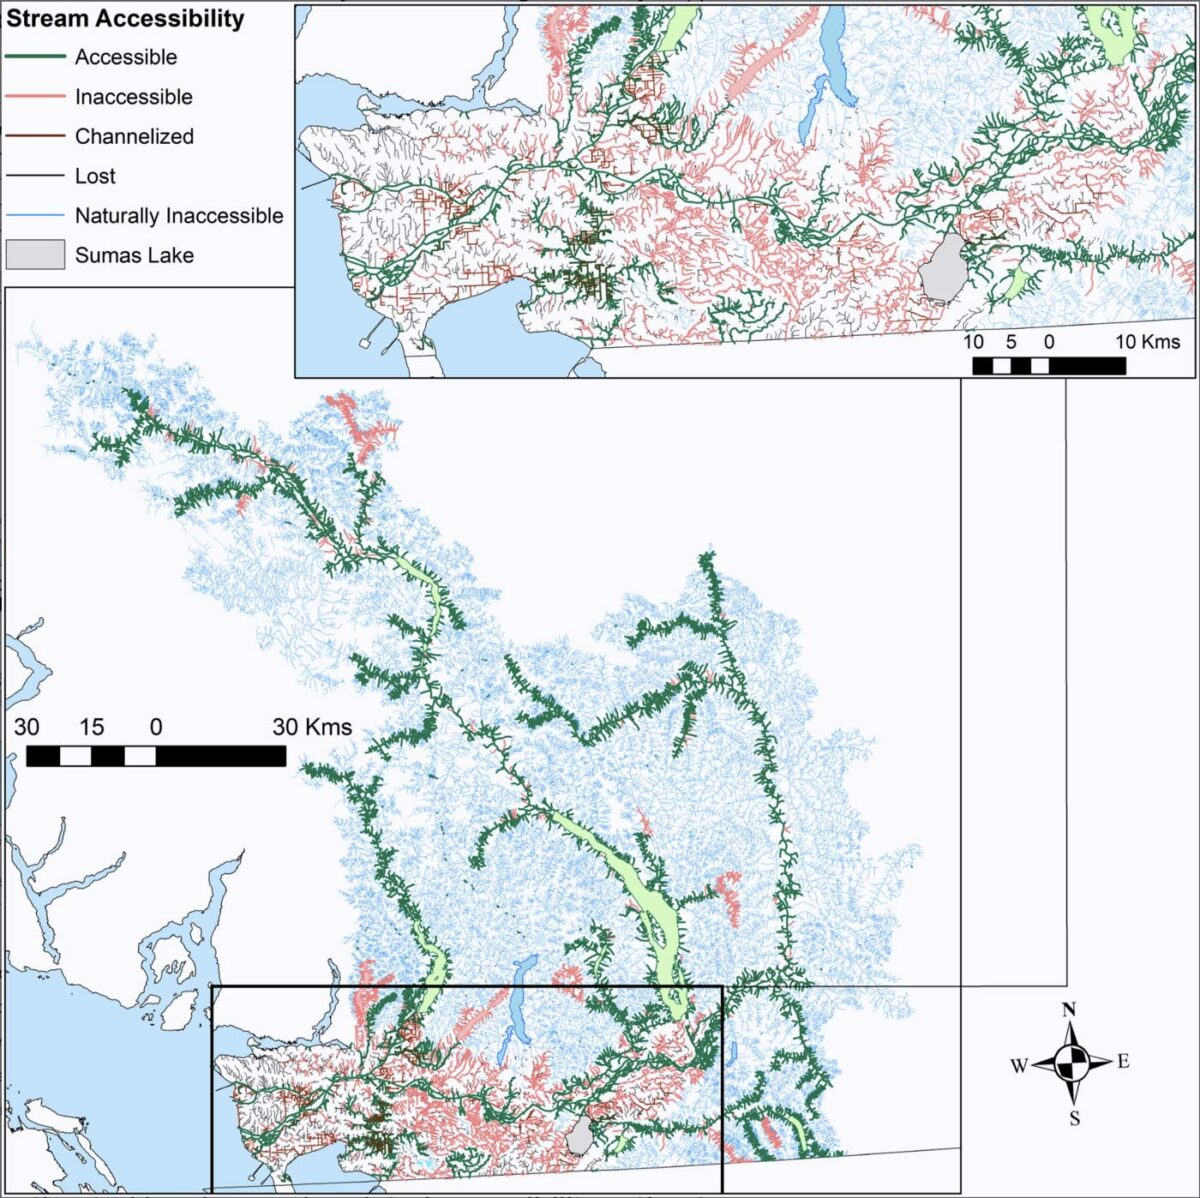 Figure 3, a map of lost streams and habitat for Pacific Salmon.